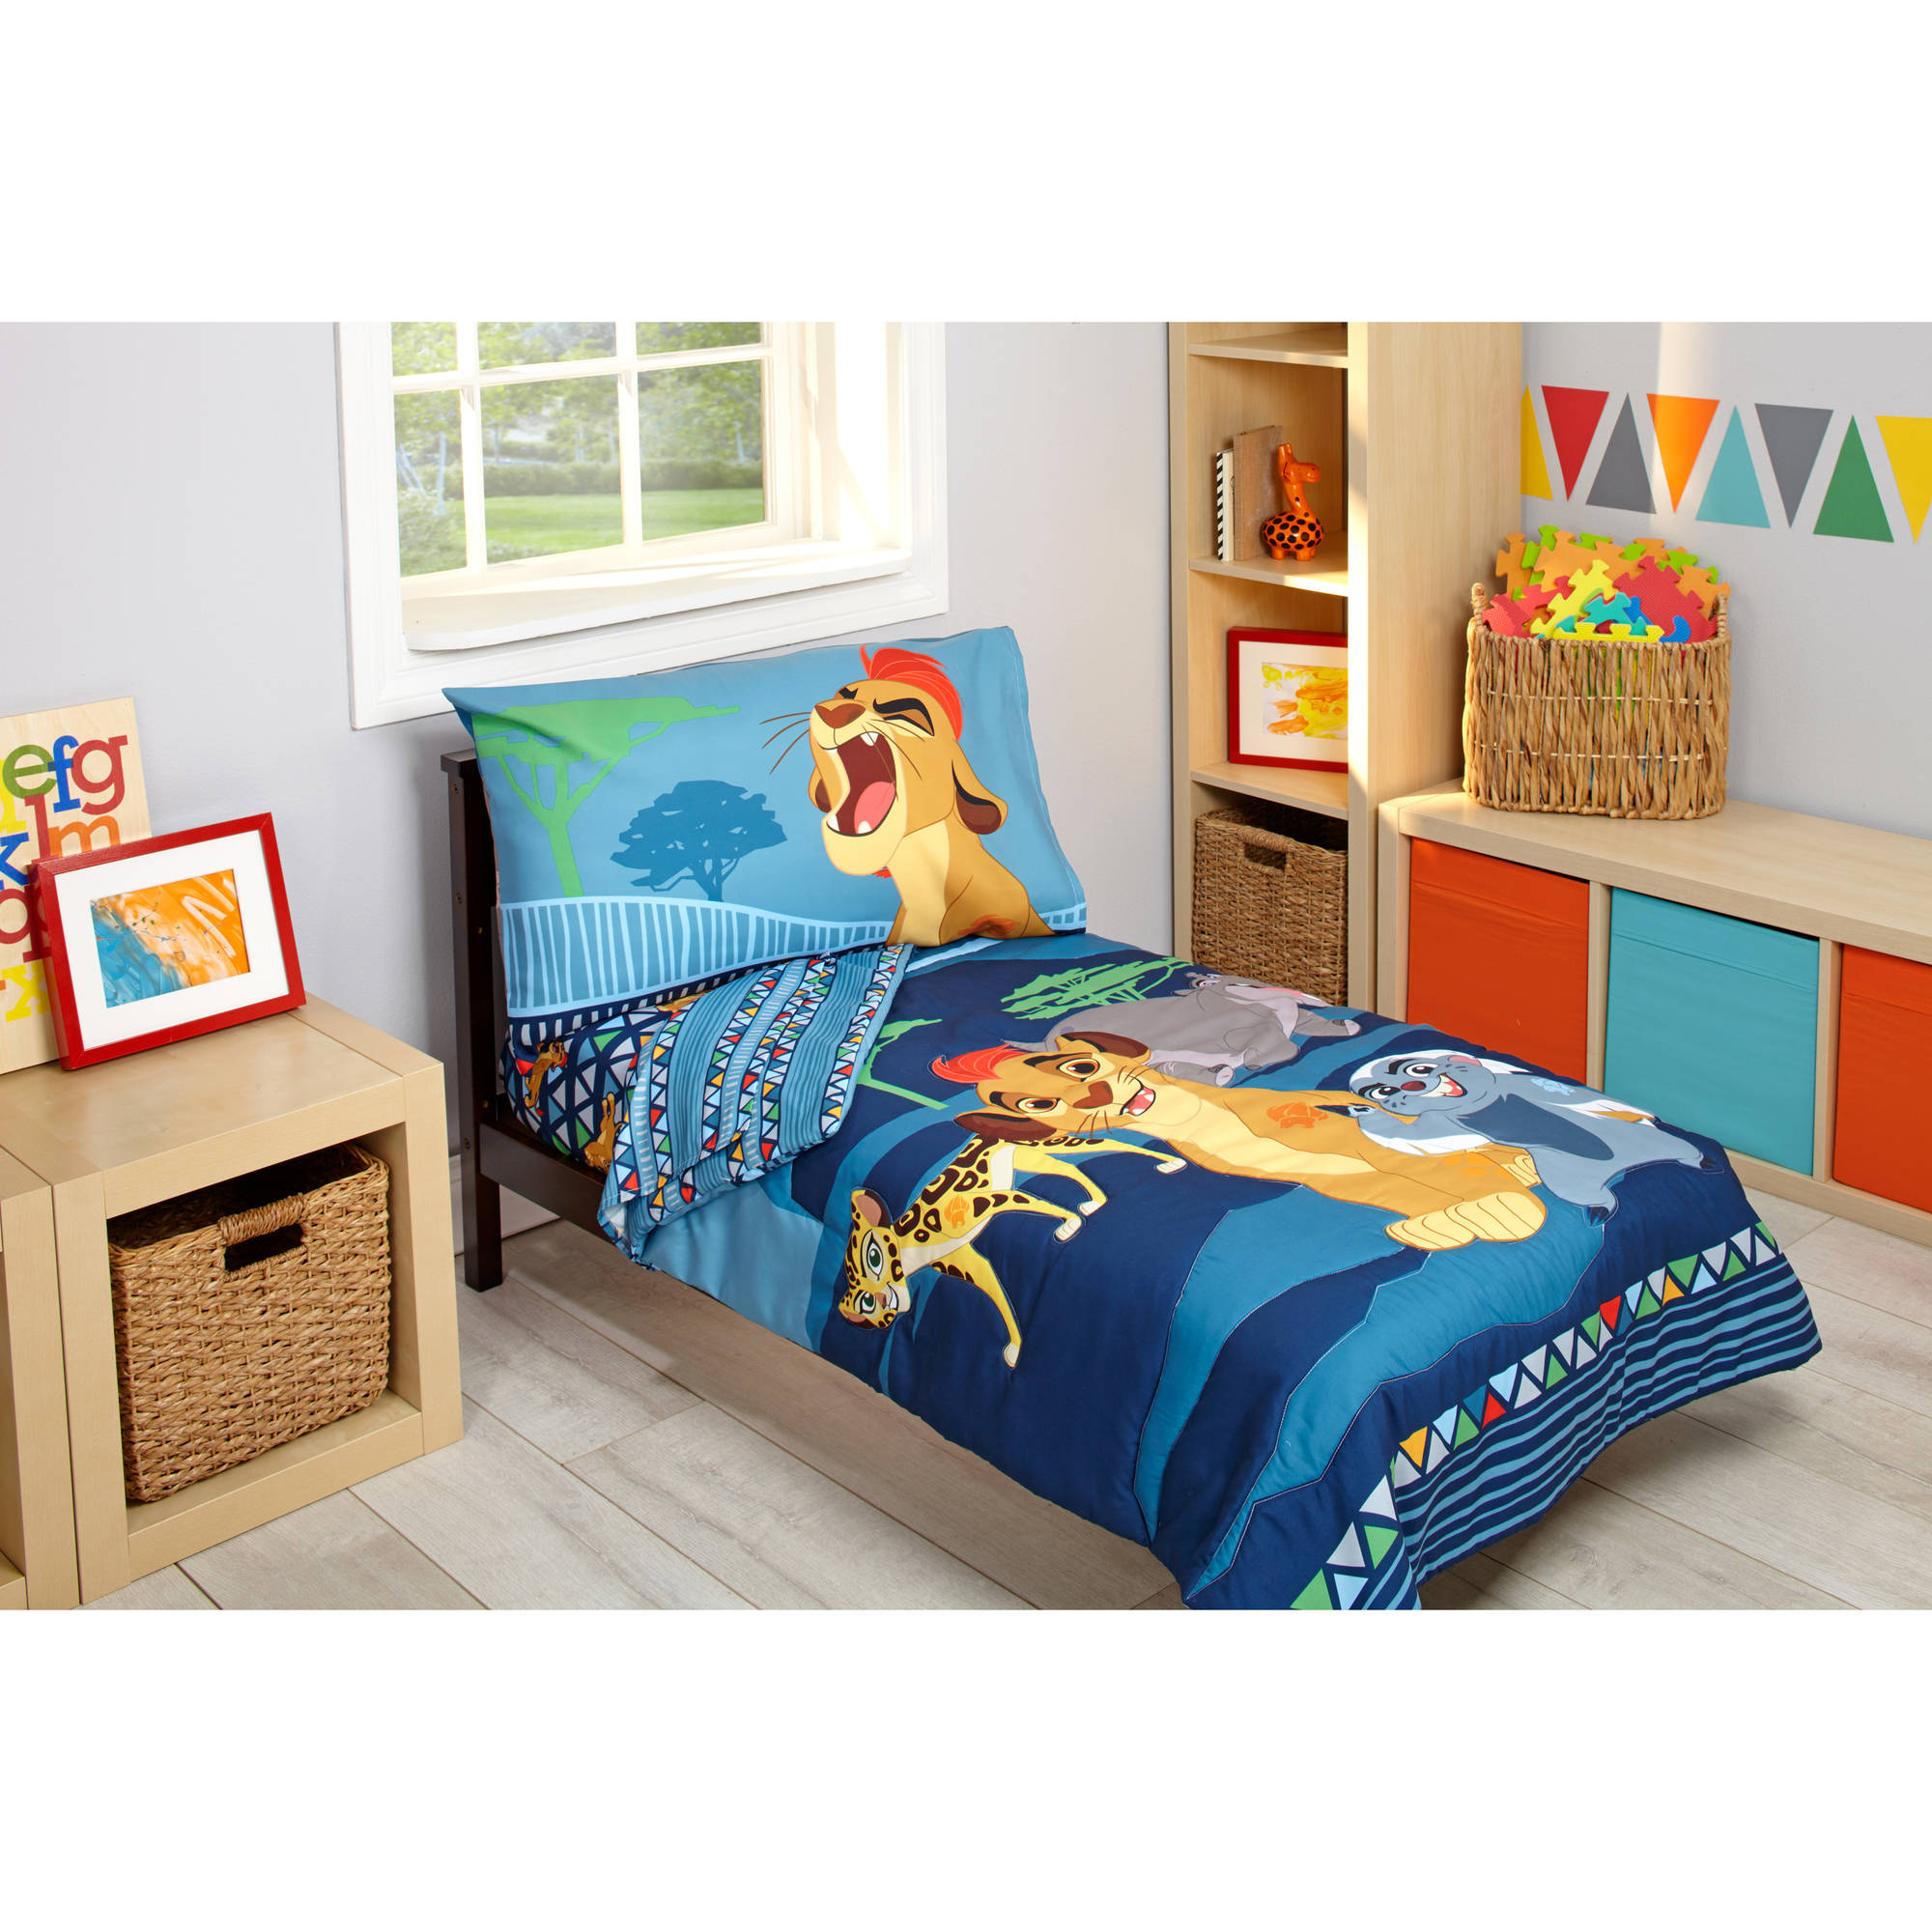 Disney Lion Guard Wild Team 4-Piece Toddler Bedding Set